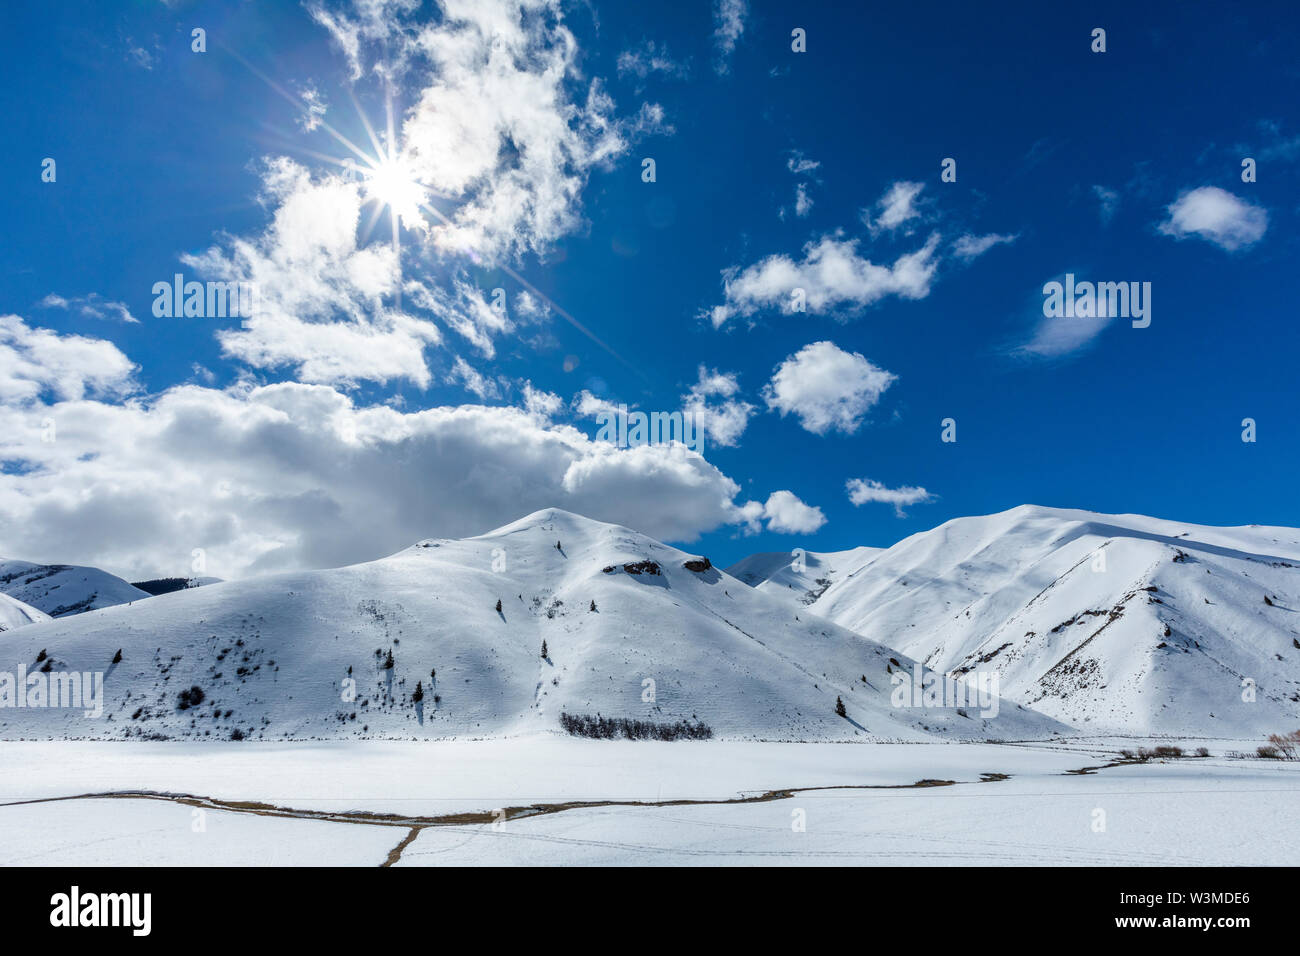 Snow covered mountains in Bellevue, Idaho, USA - Stock Image